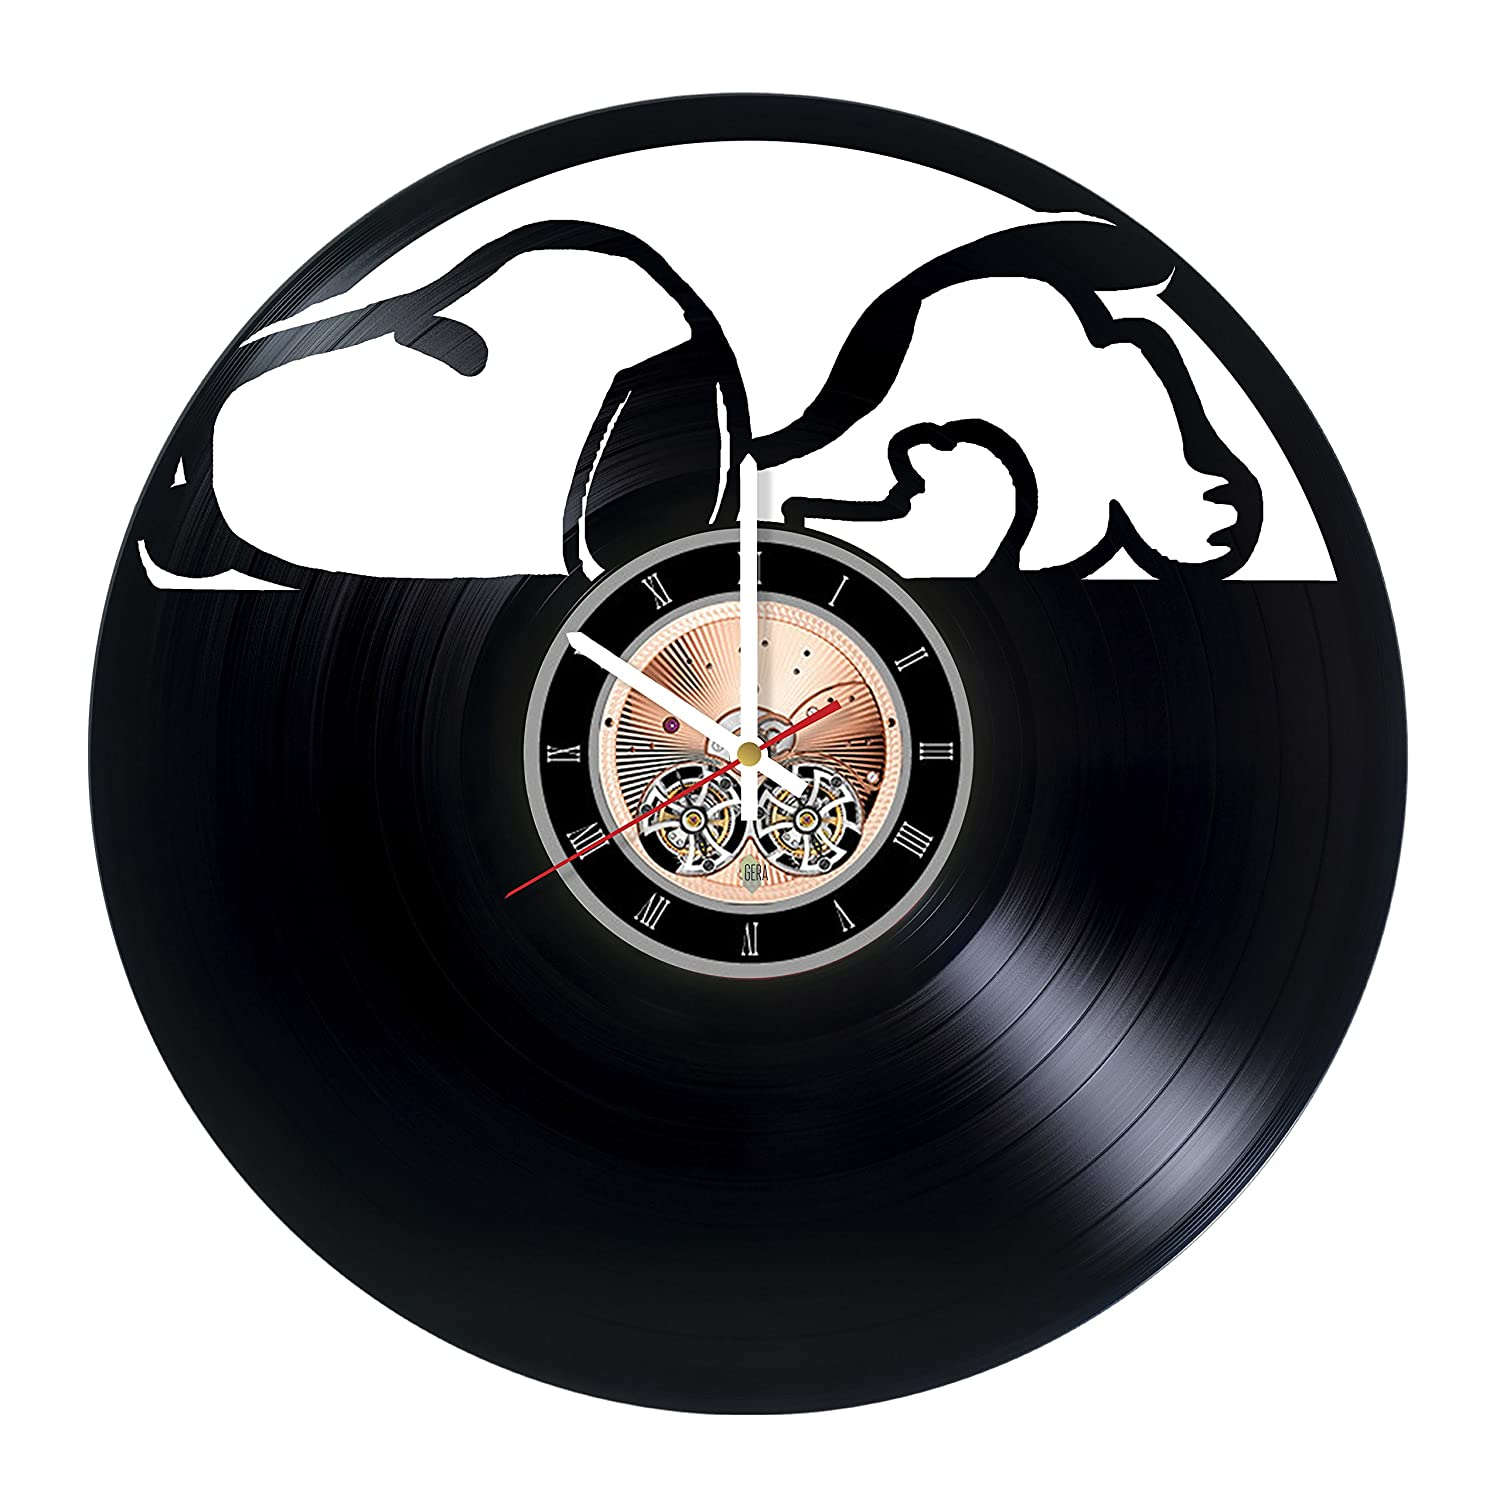 Snoopy Sleeping Dogs Vinyl Record Wall Clock -Nursery room wall decor - Gift ideas for kids, siblings - Unique Art Design choma